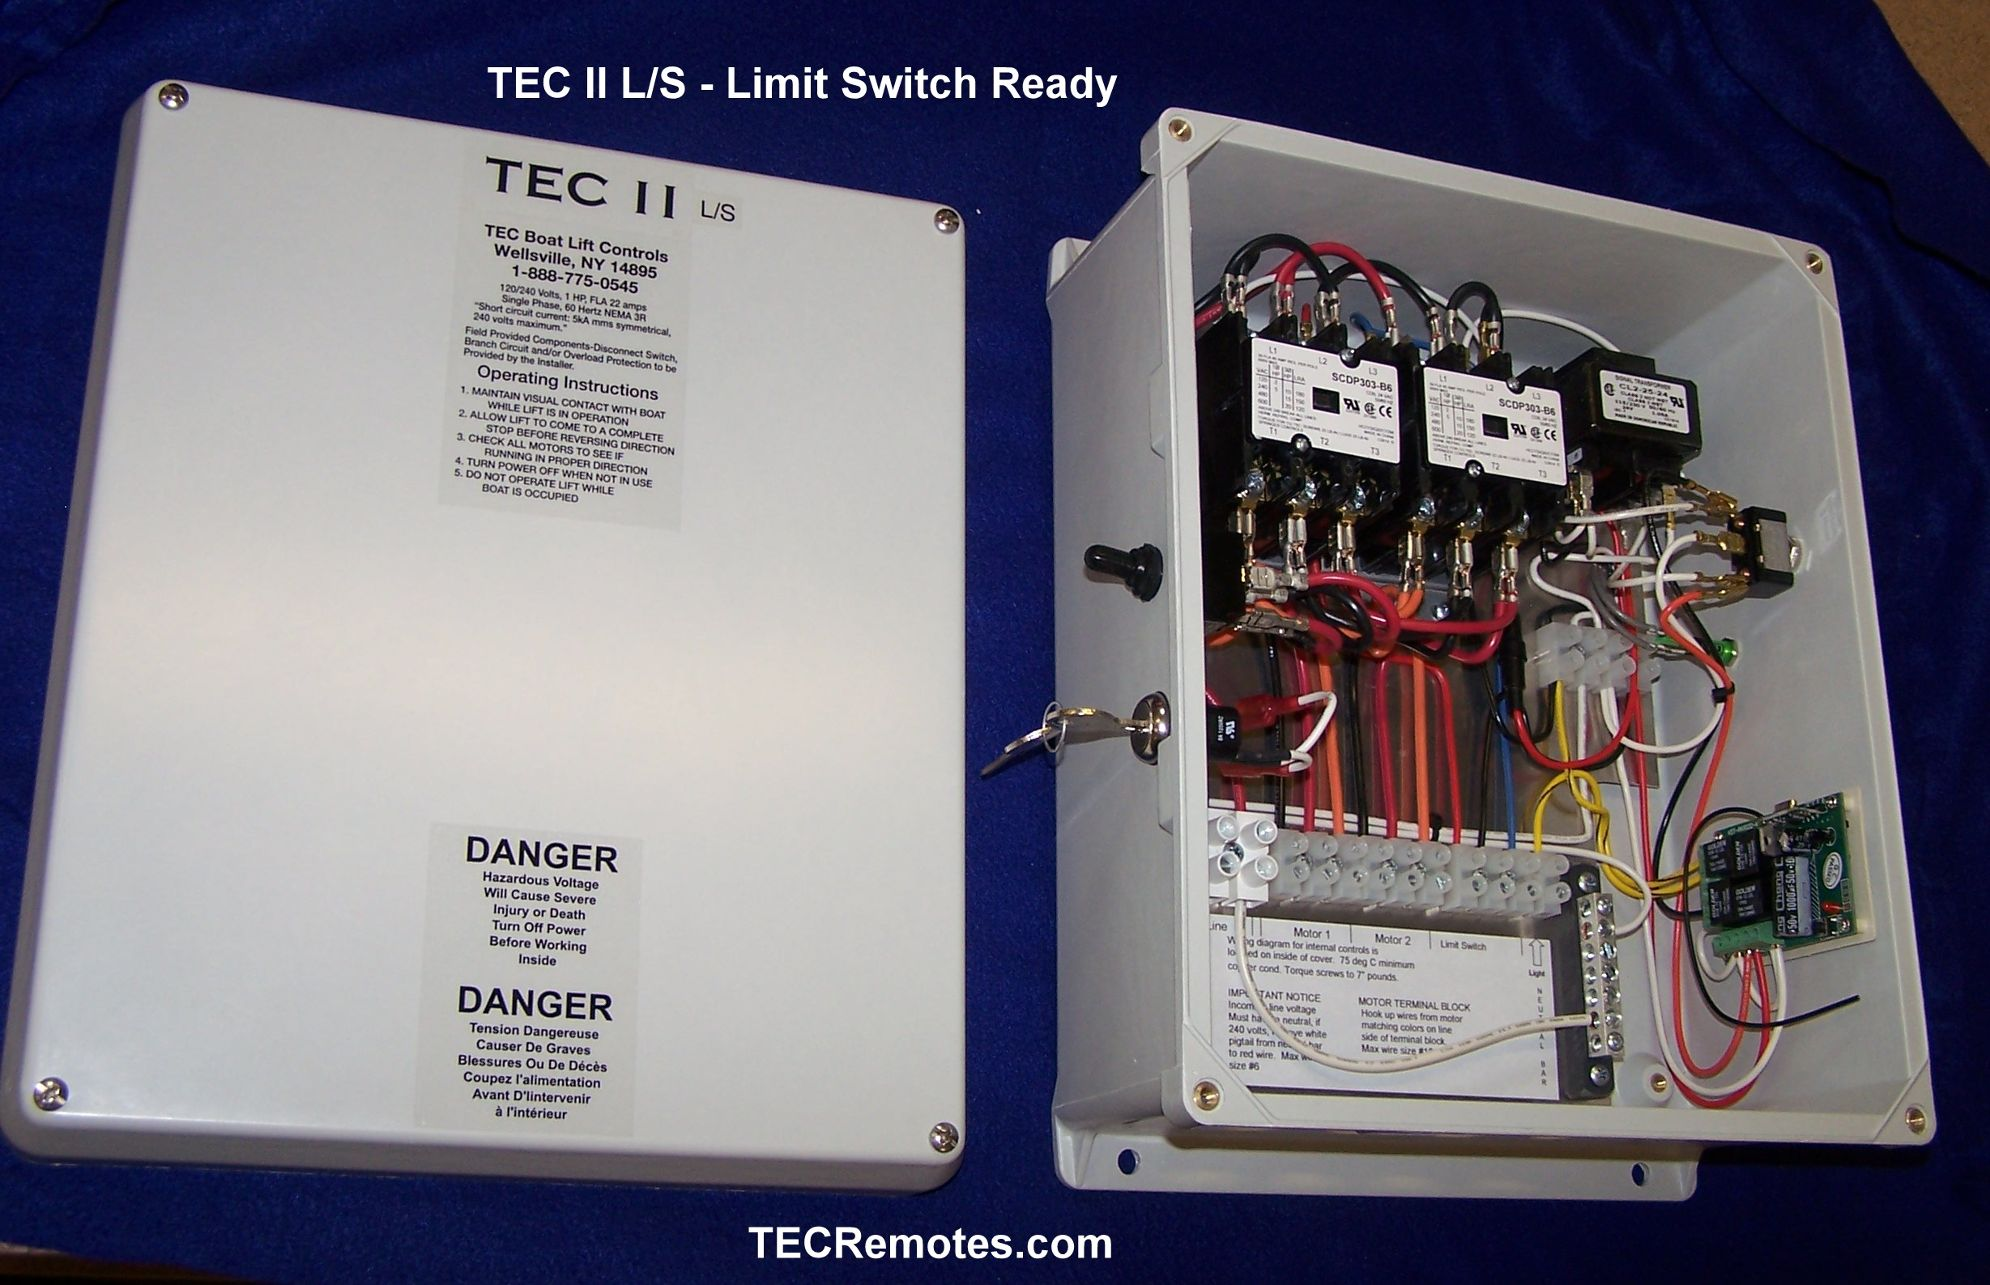 boat lft remote controls, tec i, tec ii, tec 1 2, and tec iv on  for tec ii l s limit switch ready two motor remote at